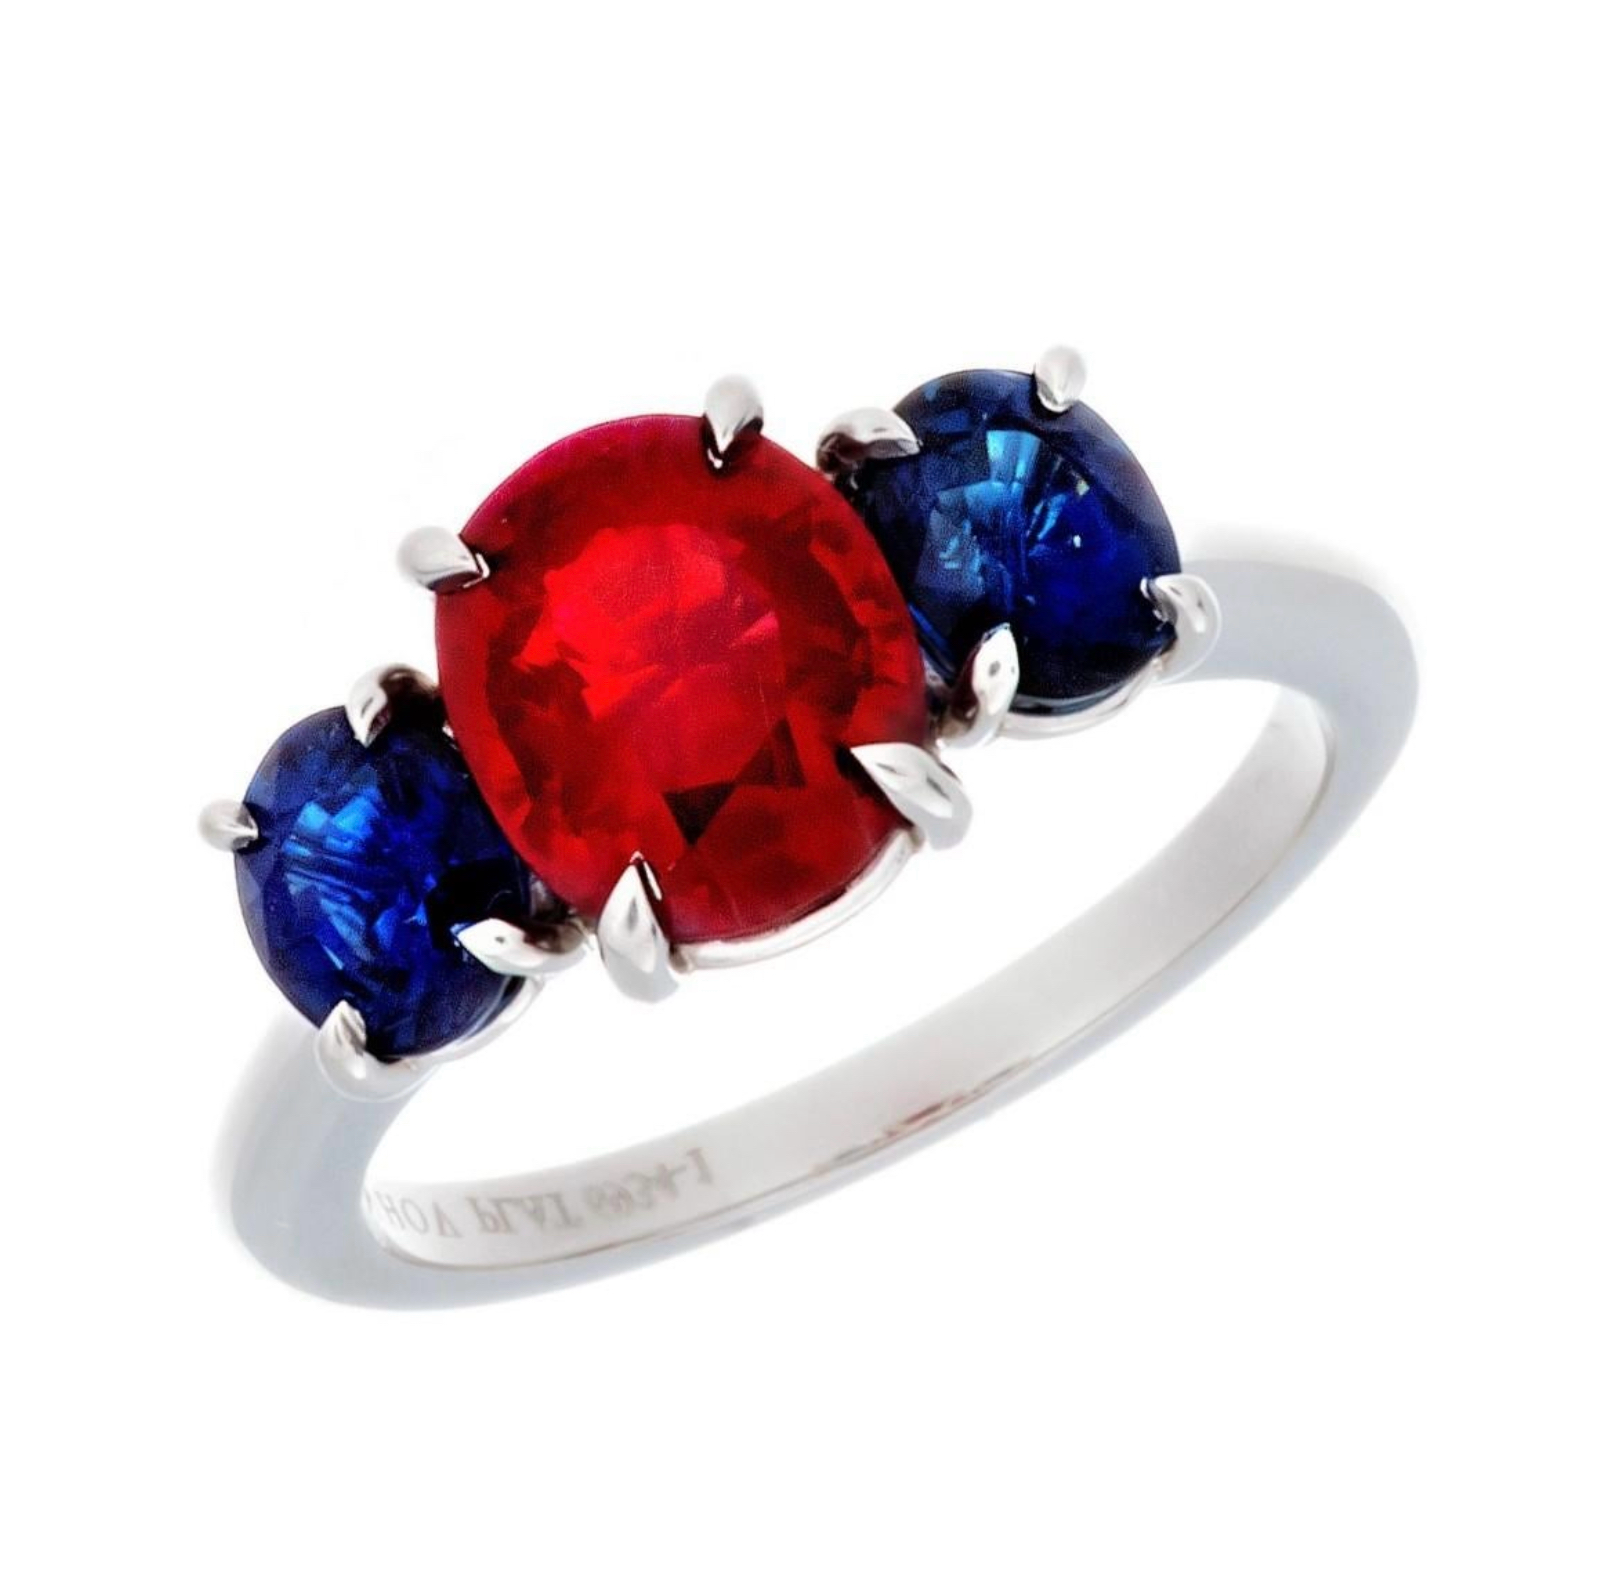 Platinum Burmese Ruby and Sapphire 3-Stone Ring